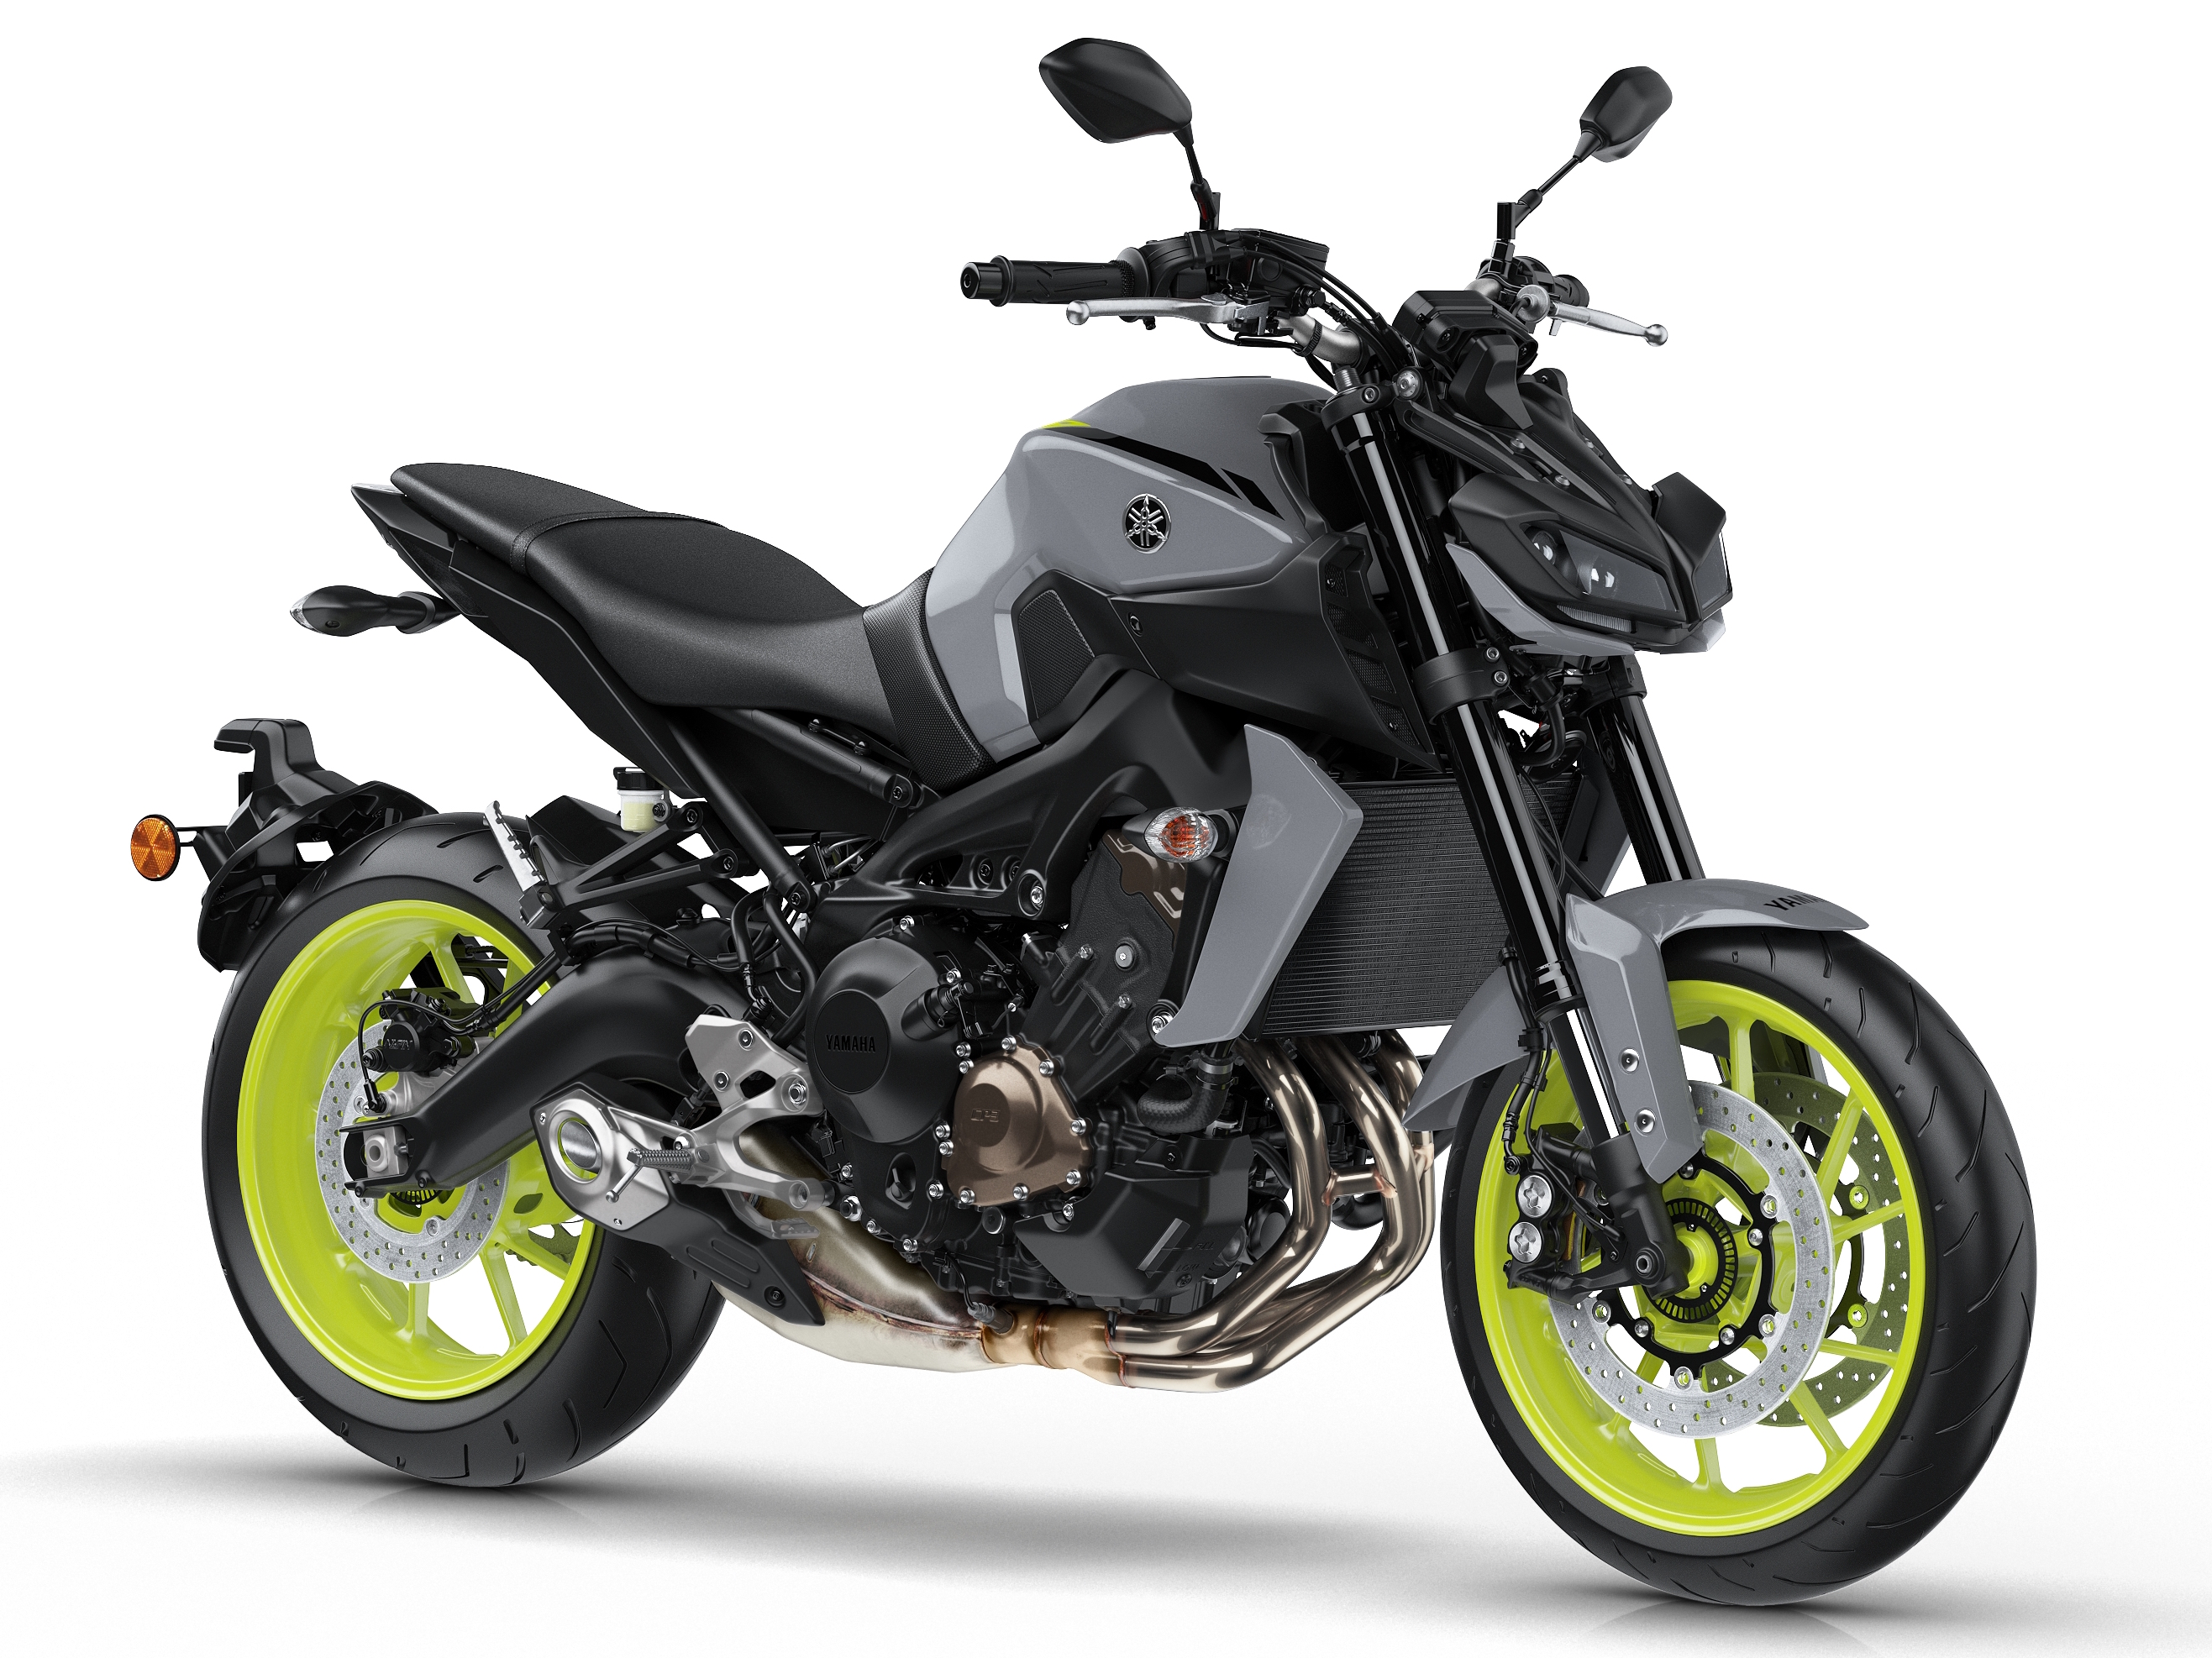 2017 Yamaha MT-09 updated for the new year – now with LED lights ...